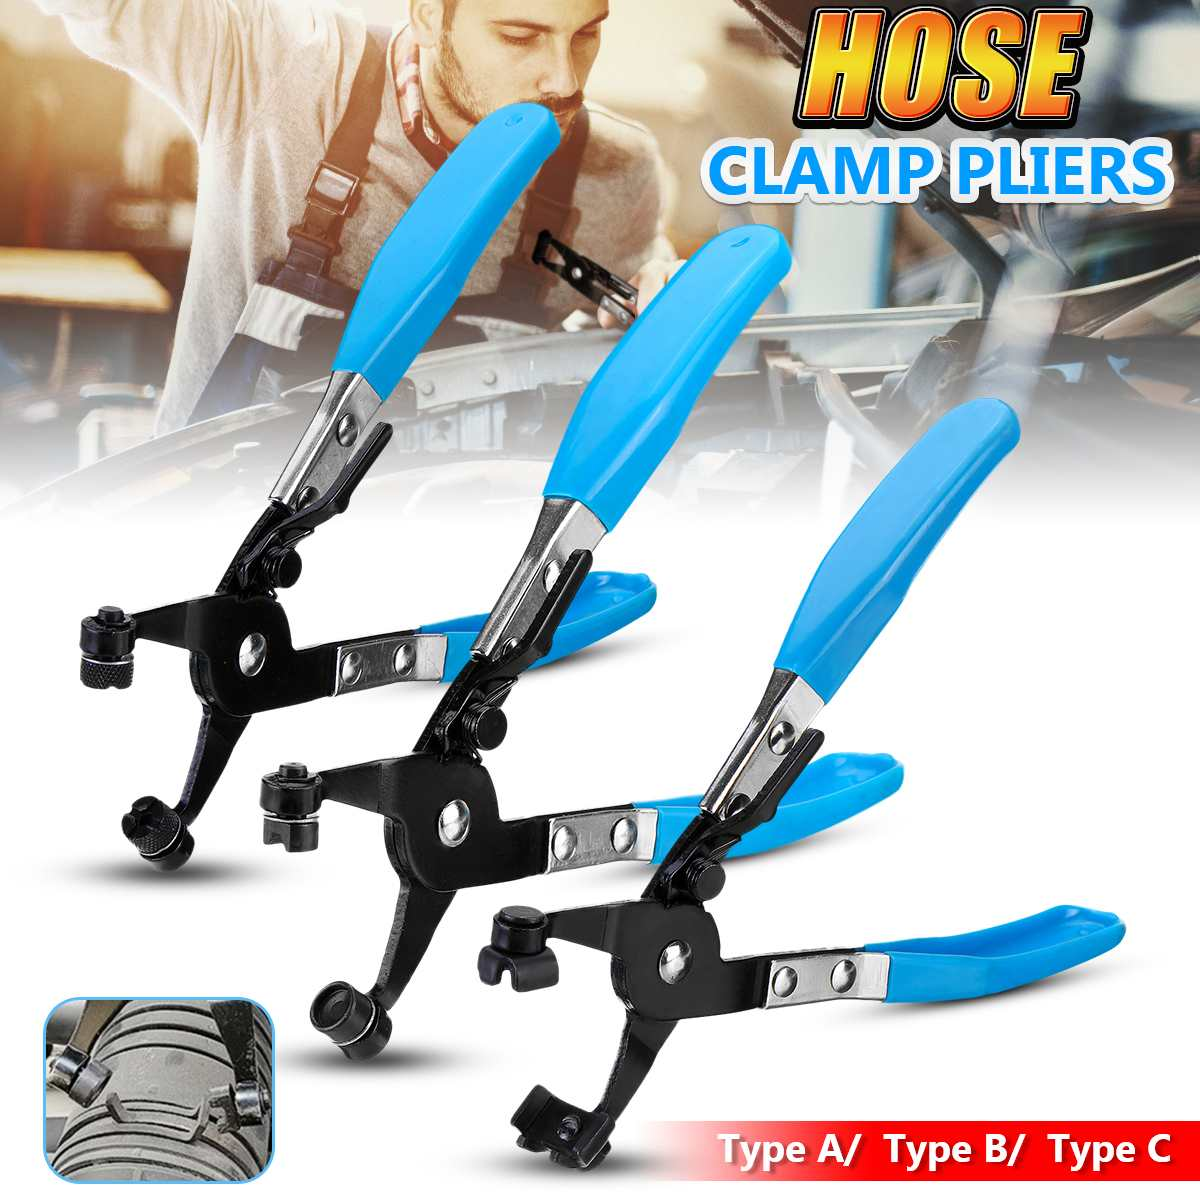 3 Type Flat-Band Ring Spring Type Swivel Hose Clamp Pliers Tool Car Auto Water Pipe Hose Removal Tool Swivel Jaws